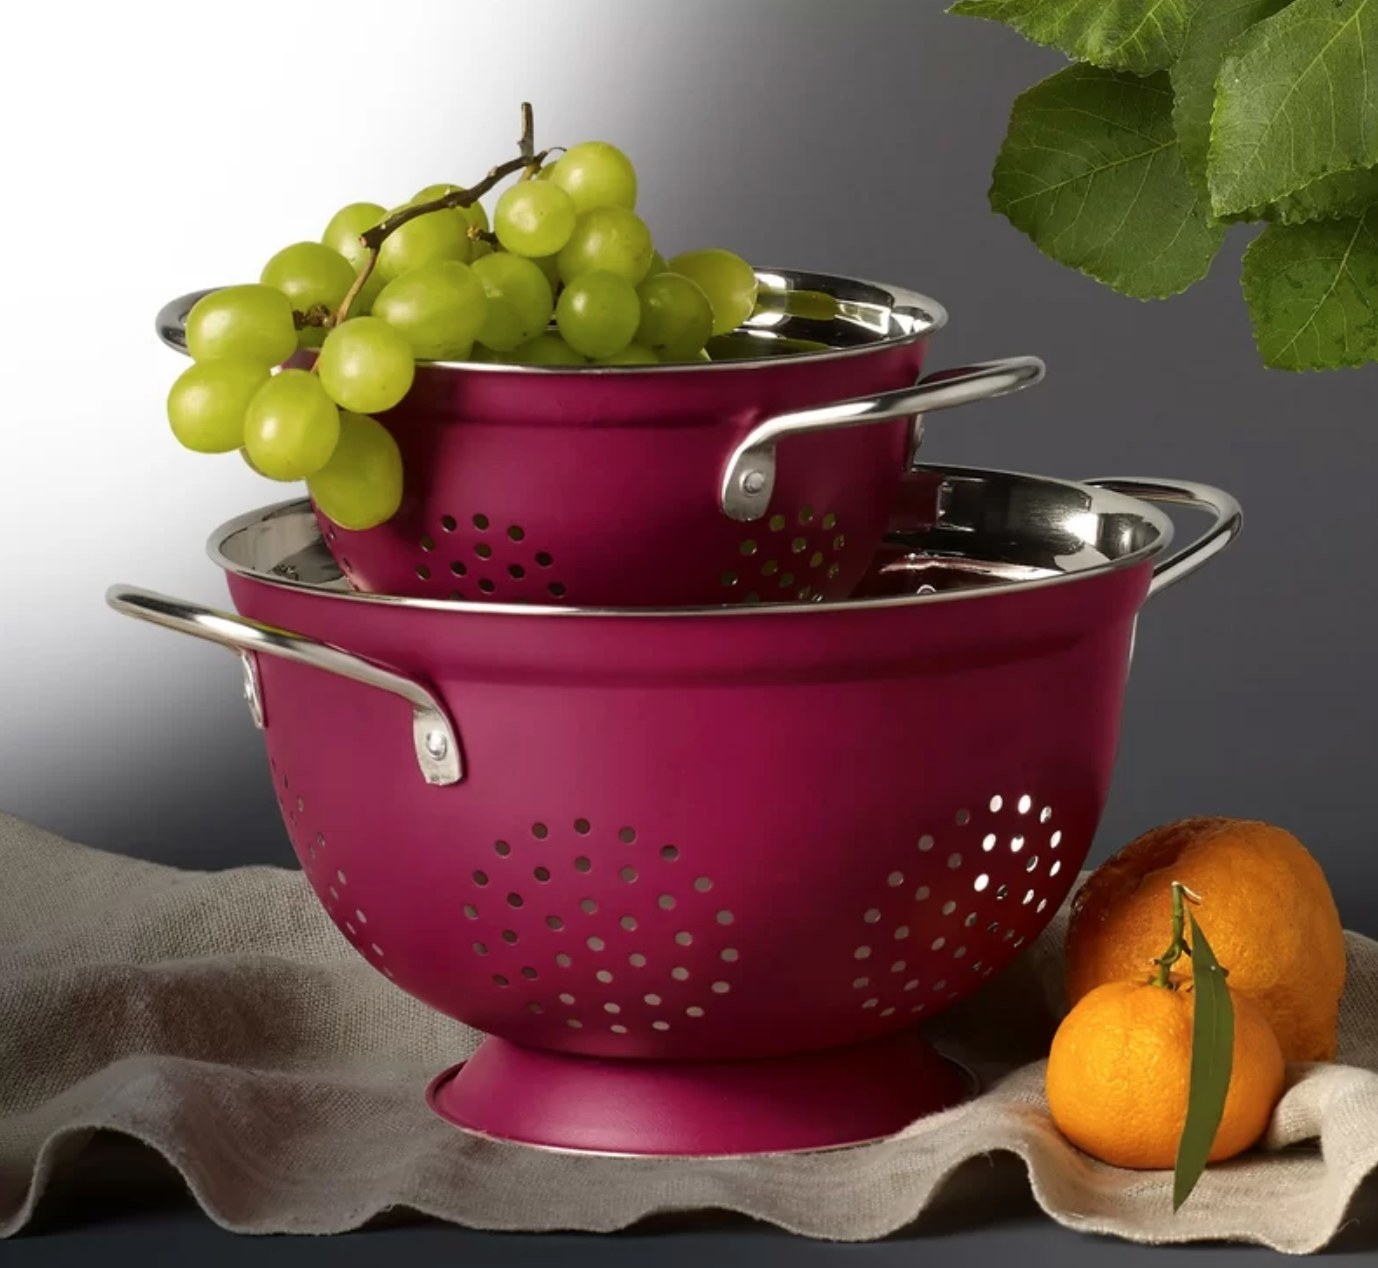 The two-piece set of stainless steel colanders in pink